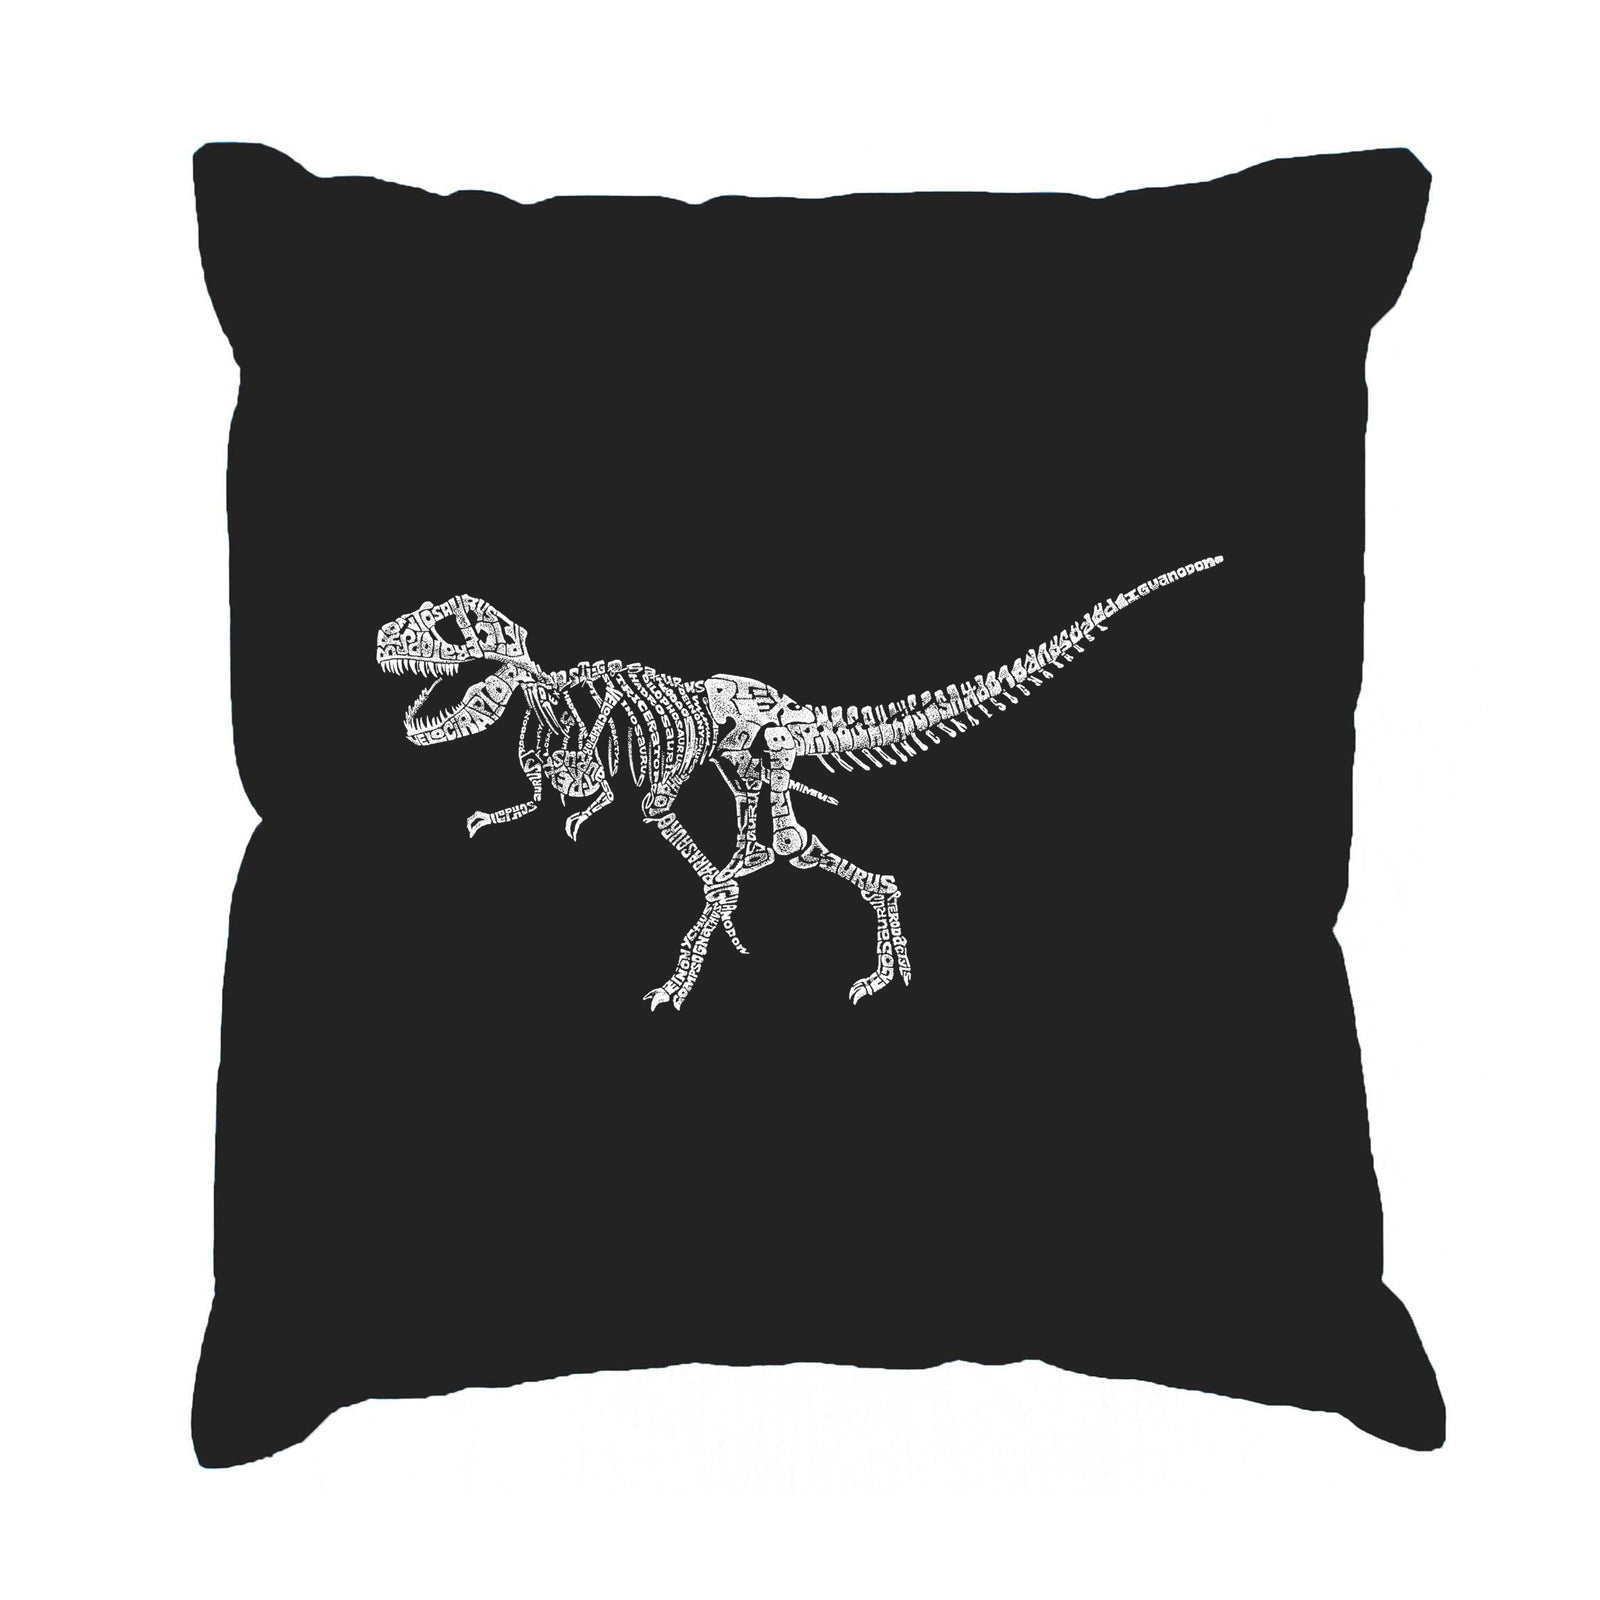 Throw Pillow Cover - Dinosaur T-Rex Skeleton